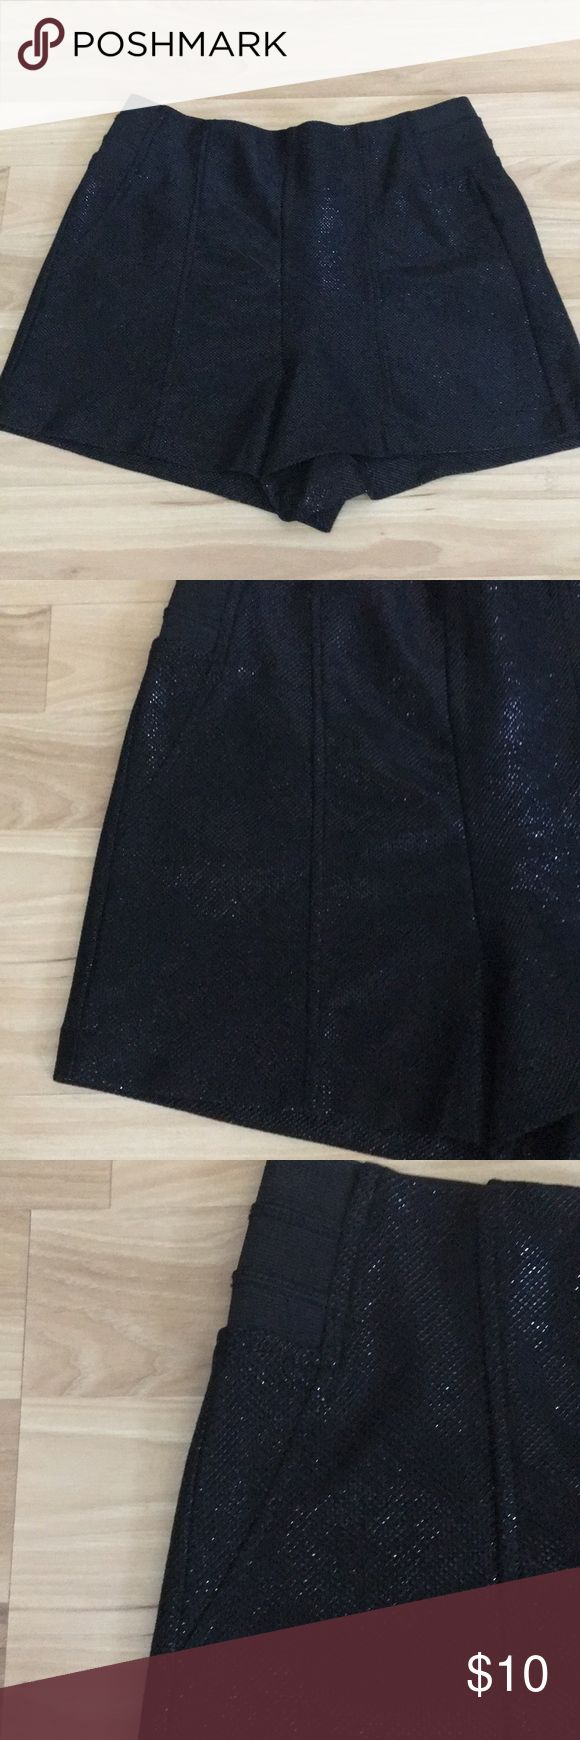 Forever 21 Black Sparkly Shorts Shell 52% Polyester  42% Metallic  Backing 94% Polyester  6% Spandex   In great condition Forever 21 Shorts